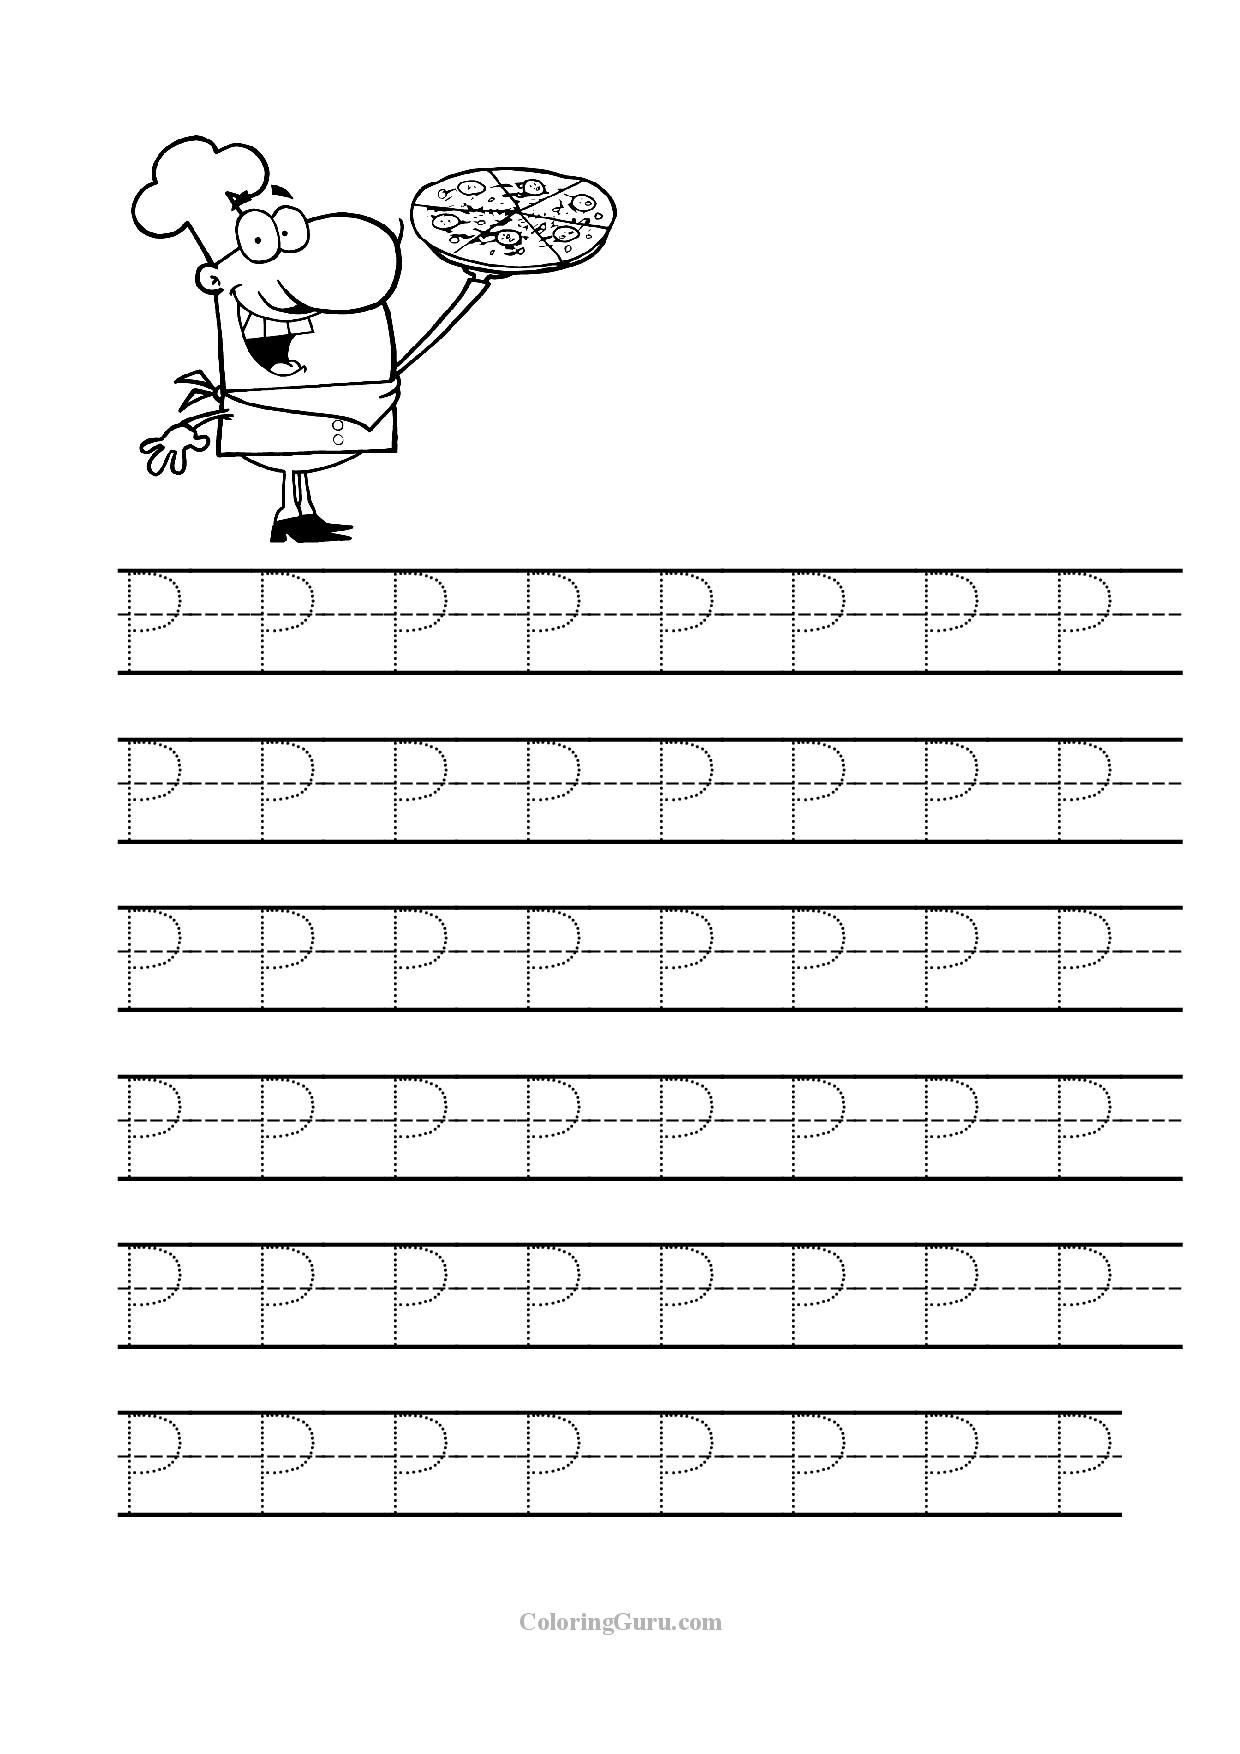 Letter P Worksheets for toddlers Free Printable Tracing Letter P Worksheets for Preschool